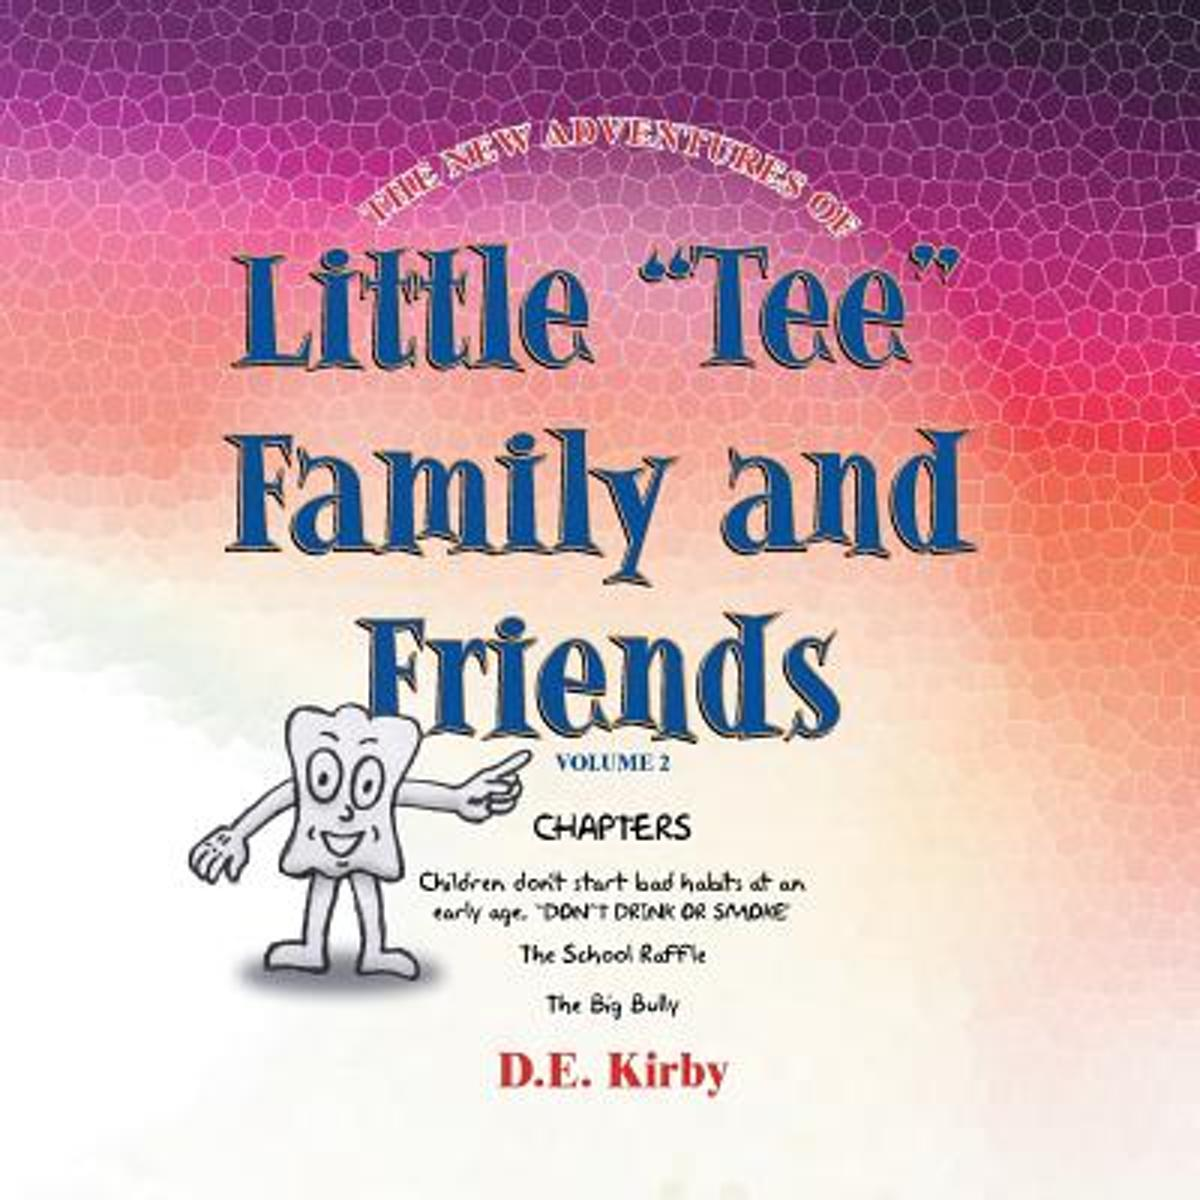 The New Adventures of ''Little Tee'' Family and Friends